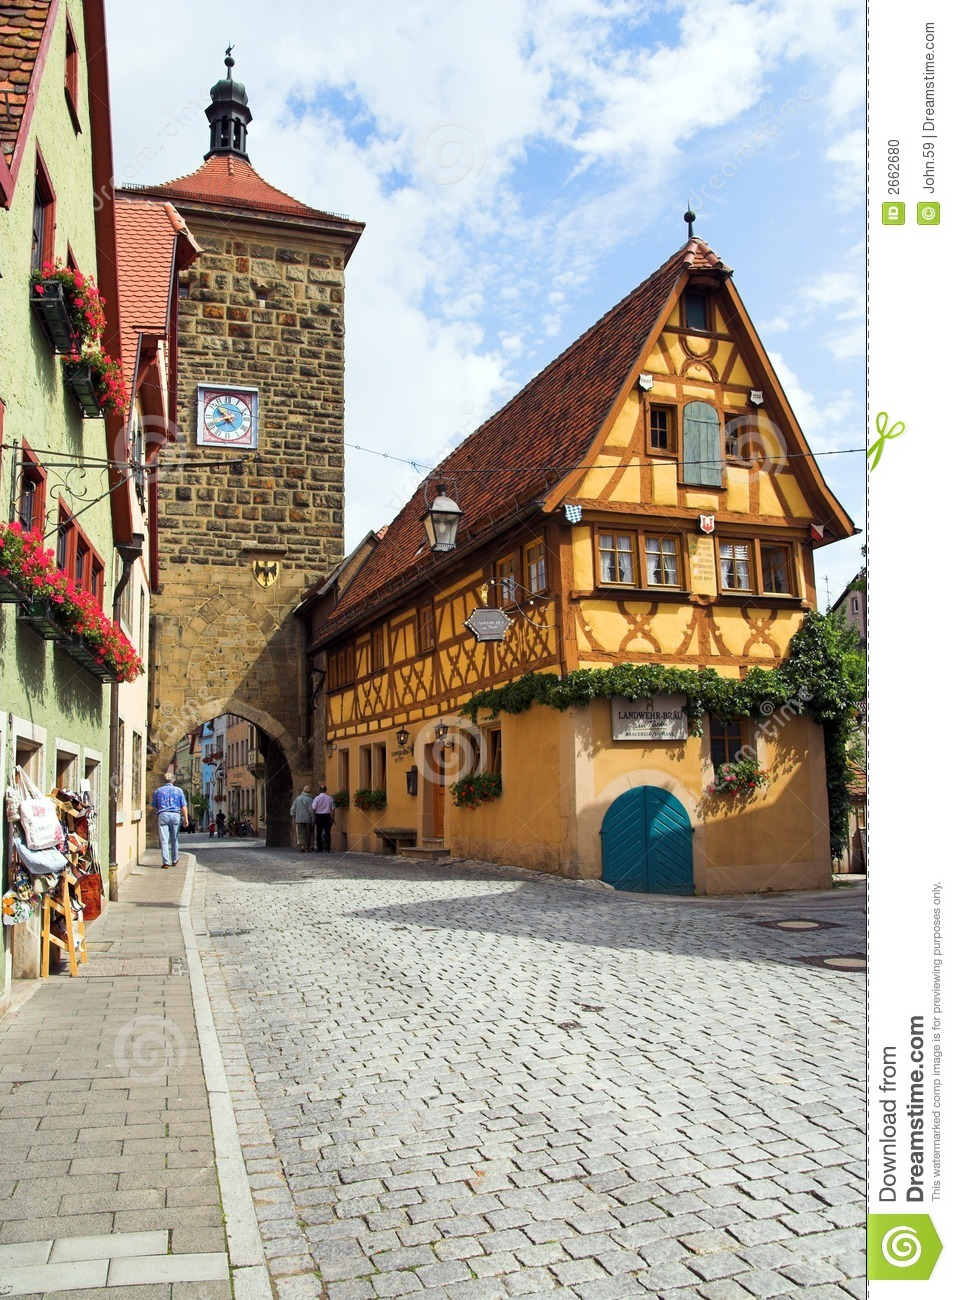 rothenburg ob der tauber stock photo image 2662680. Black Bedroom Furniture Sets. Home Design Ideas